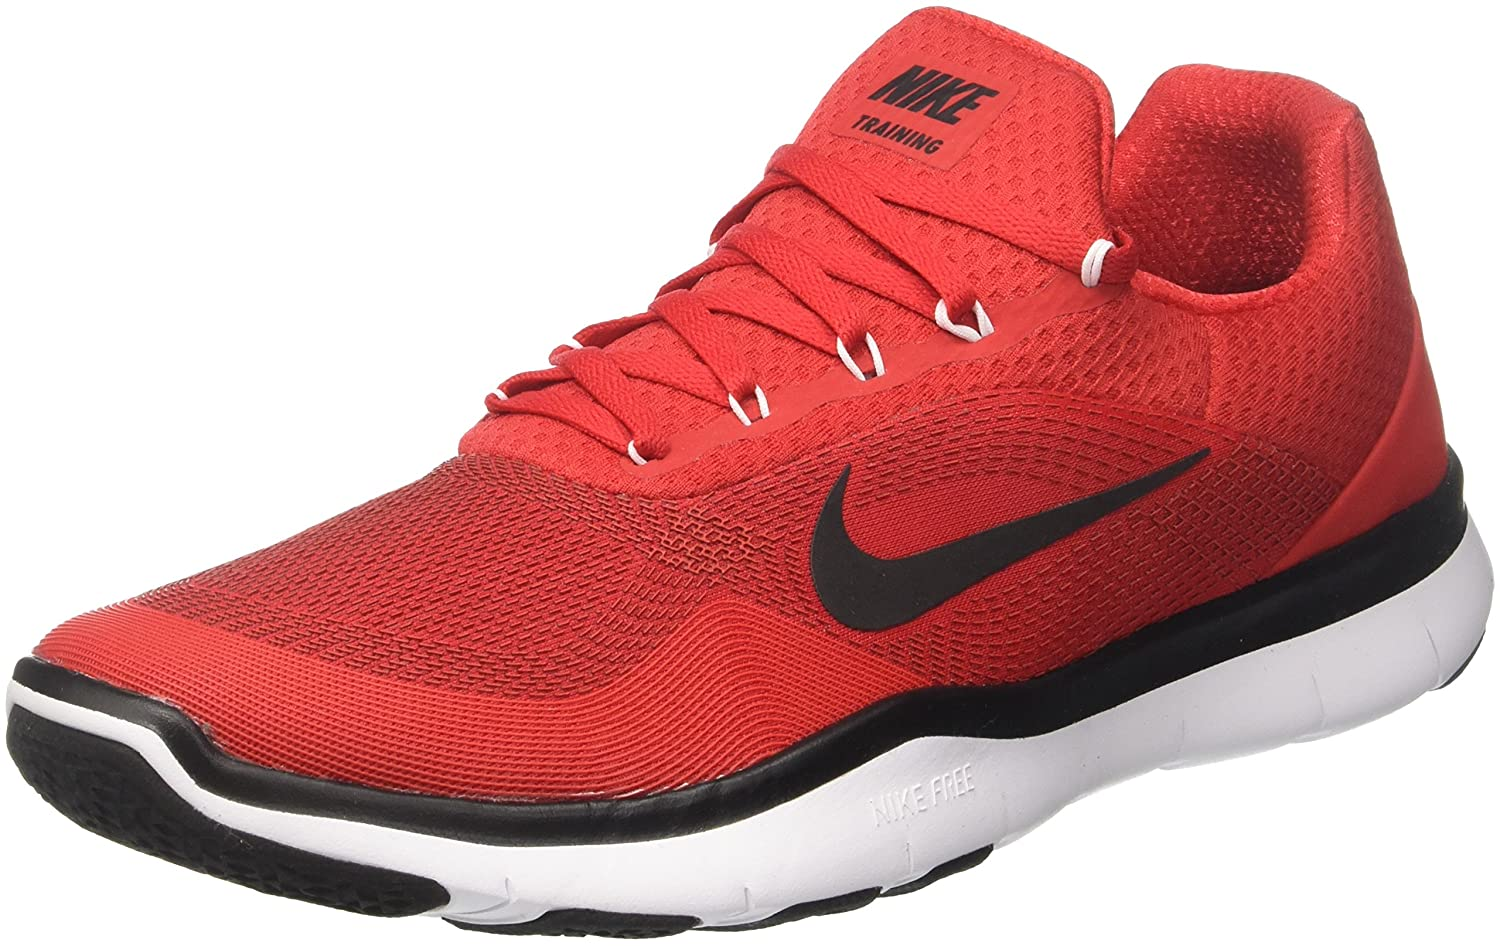 premium selection 14761 2849d NIKE Free Trainer V7 Mens Style : 898053-601 Size : 11 D(M) US